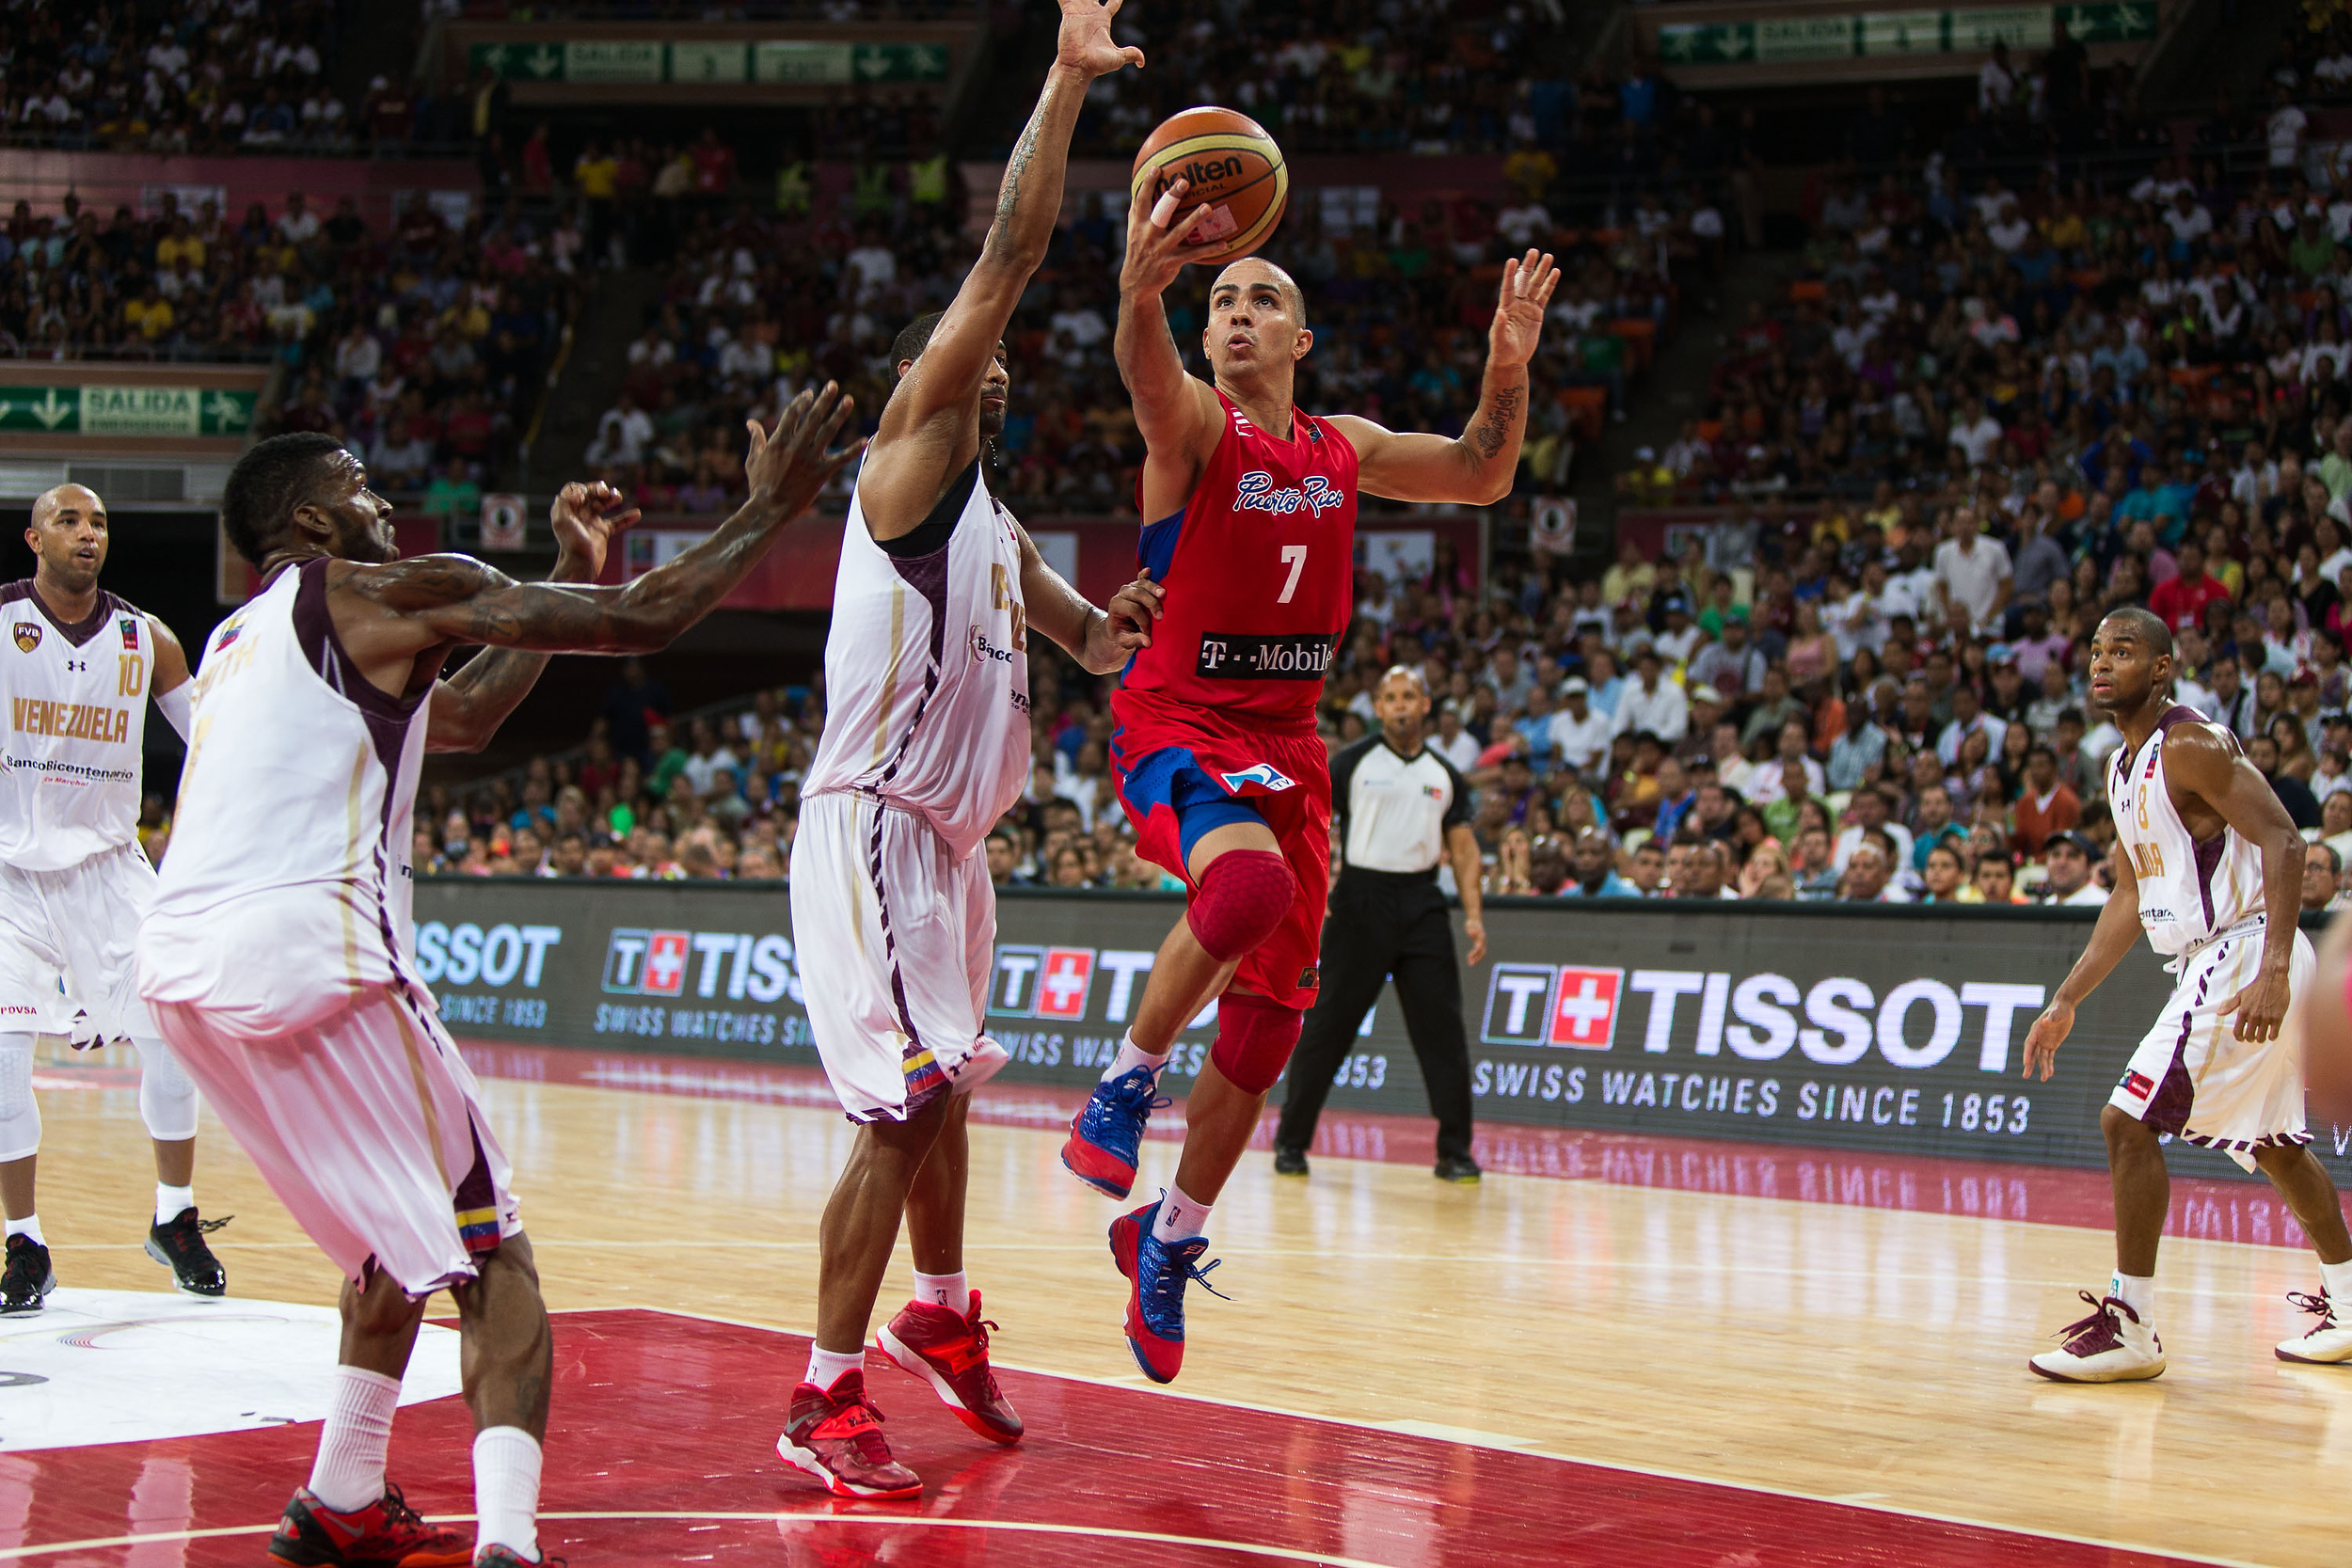 Carlos Arroyo is the face of Puerto Rico basketball. You may recall the iconic image of him popping his jersey in celebration of Puerto Rico's victory over Carmelo Anthony, LeBron James and team U.S.A. in 2004.